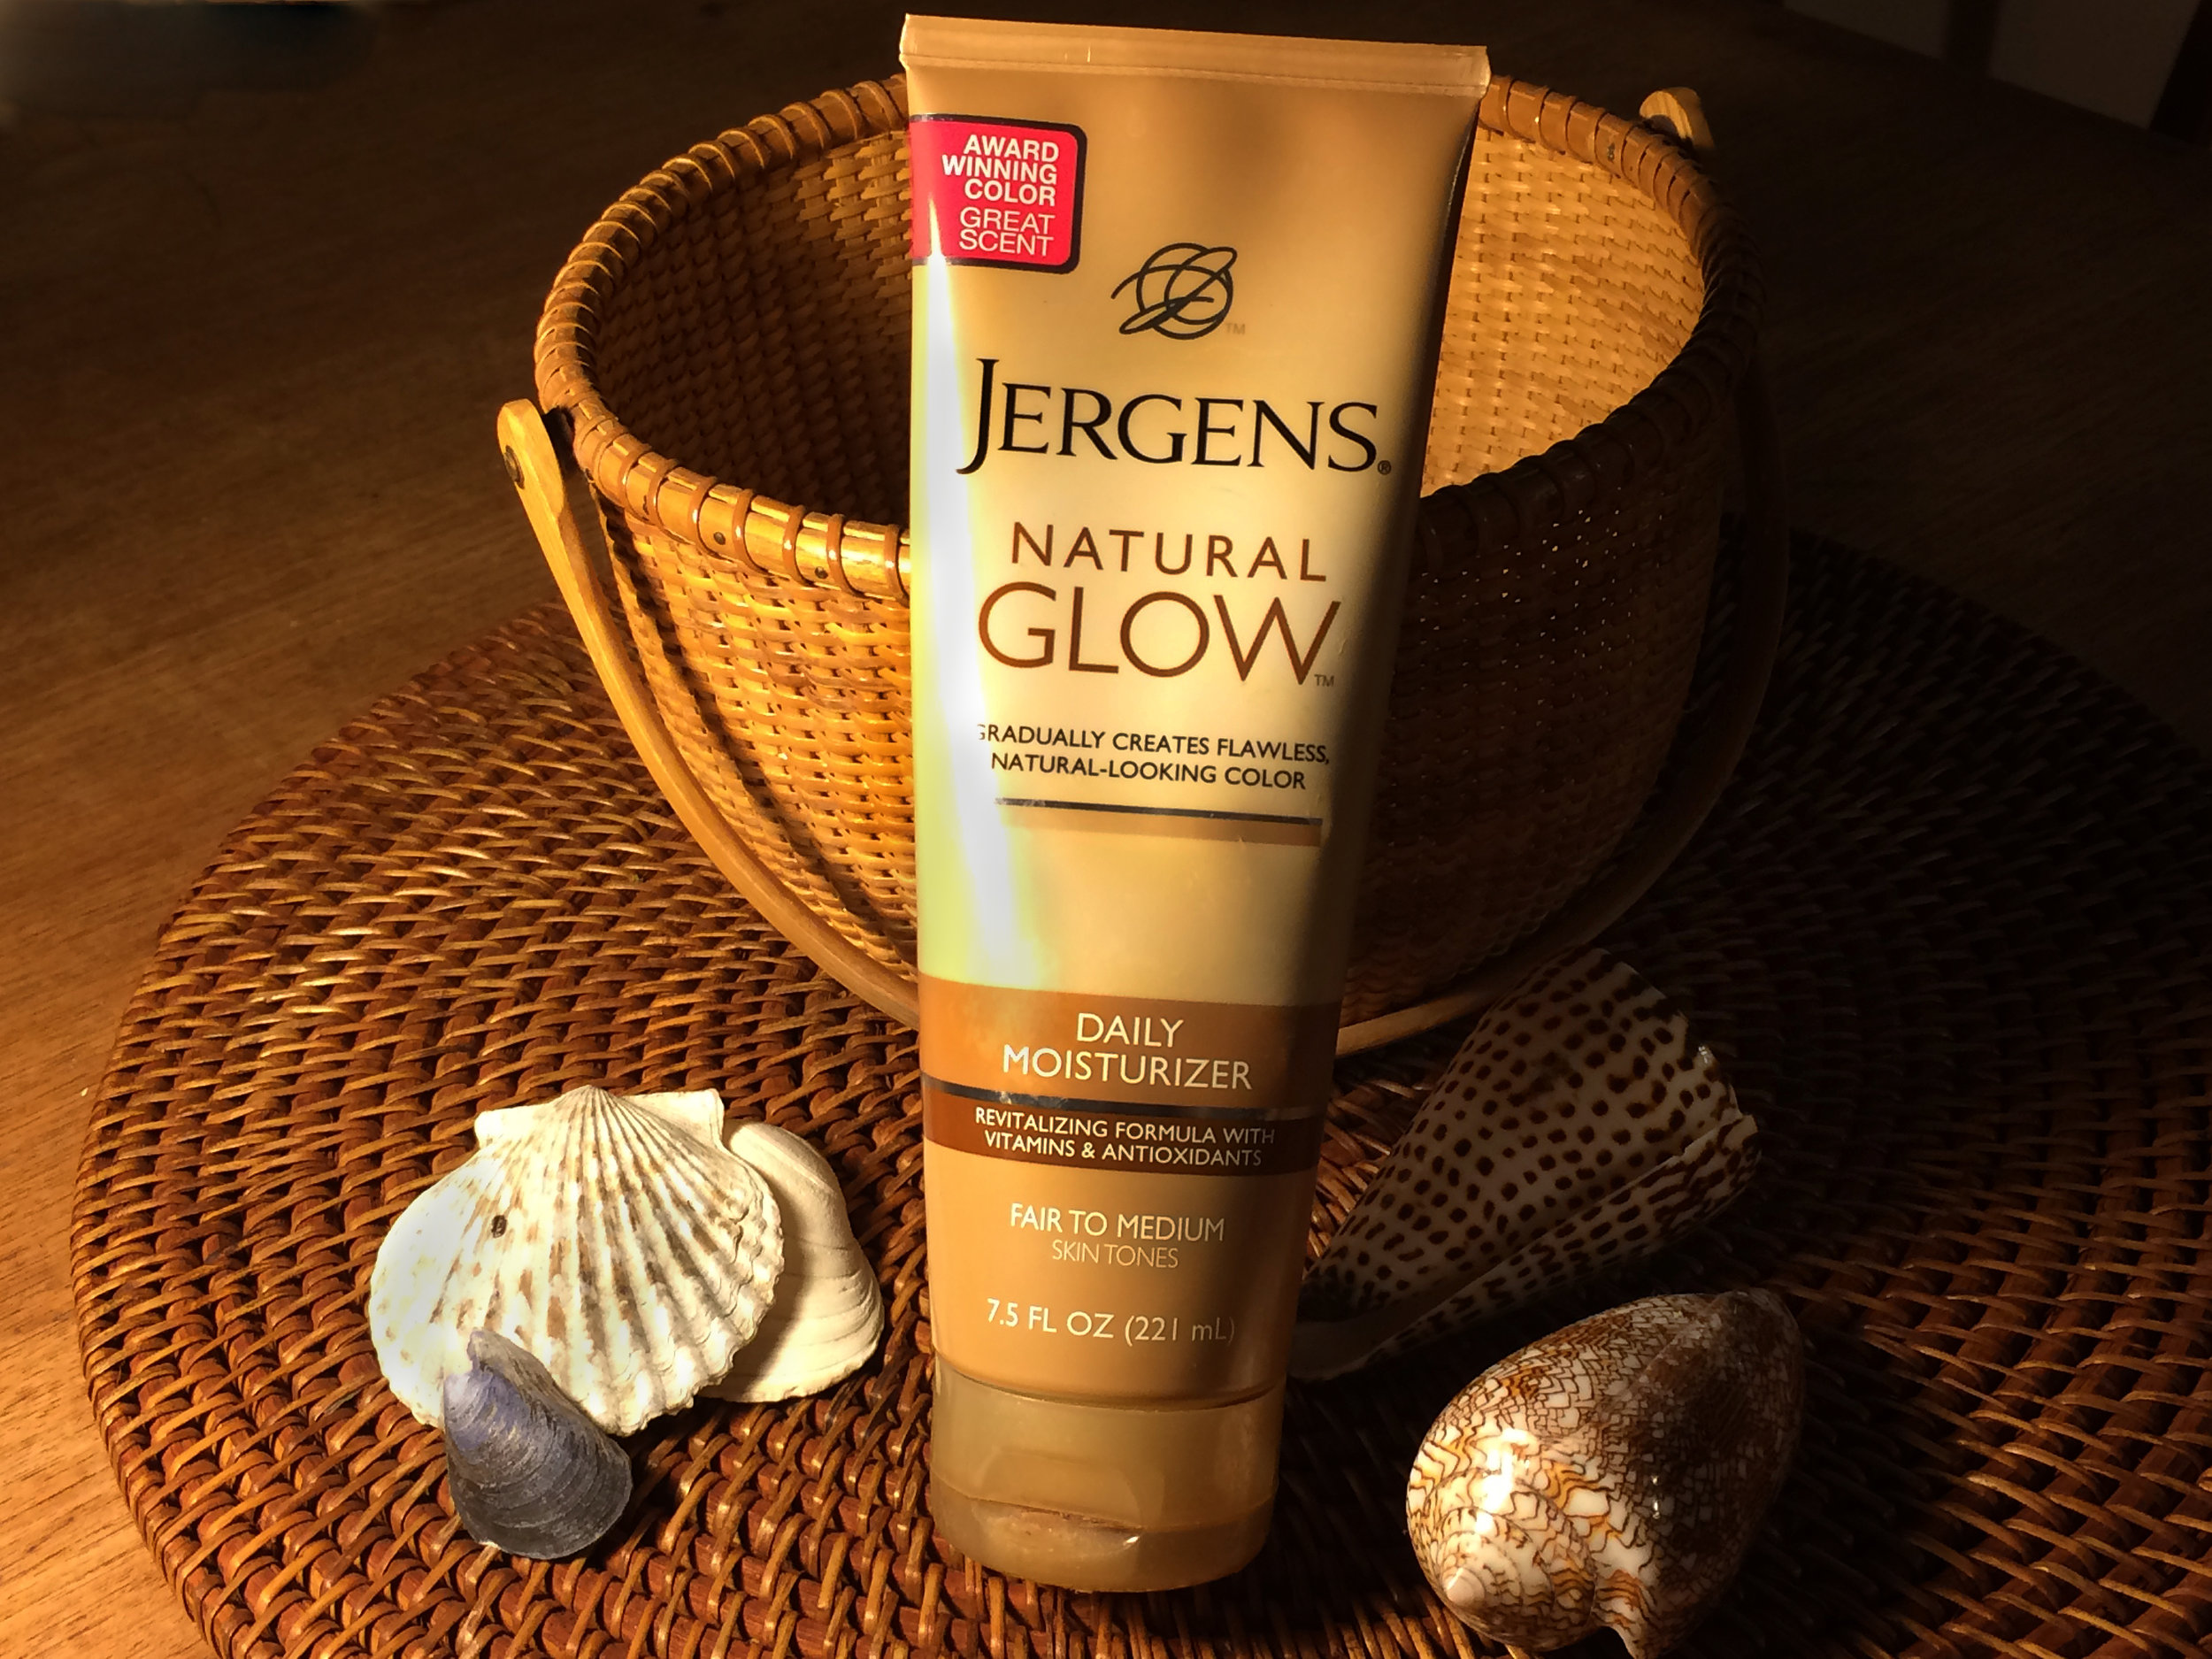 If you're super pale like me this product will be your best friend!